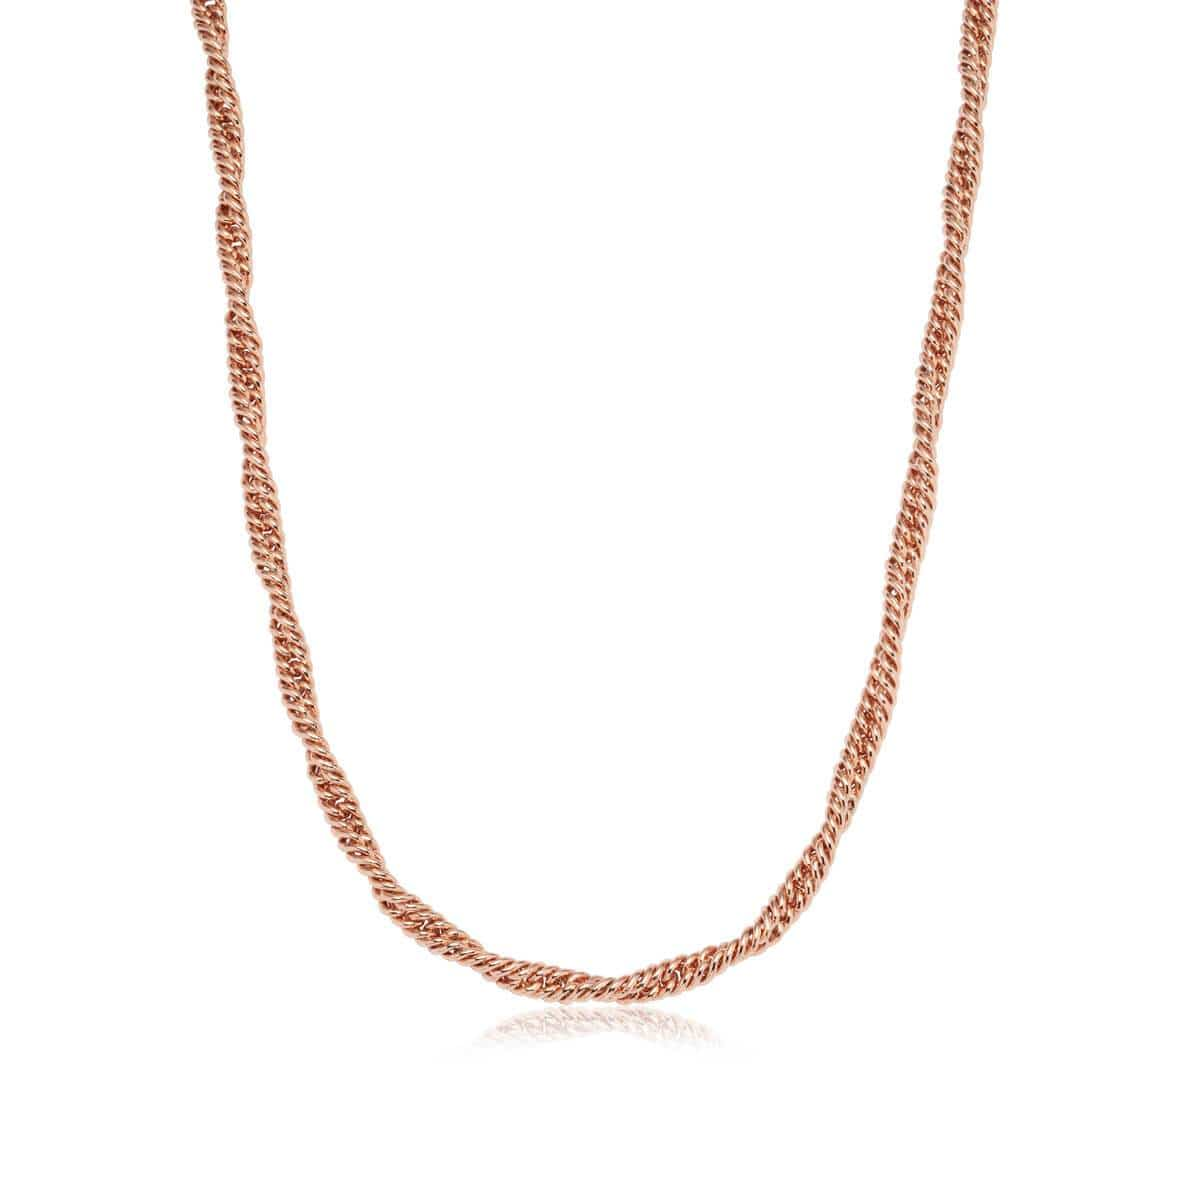 Selected Rope Chain Necklace (Rose Gold)